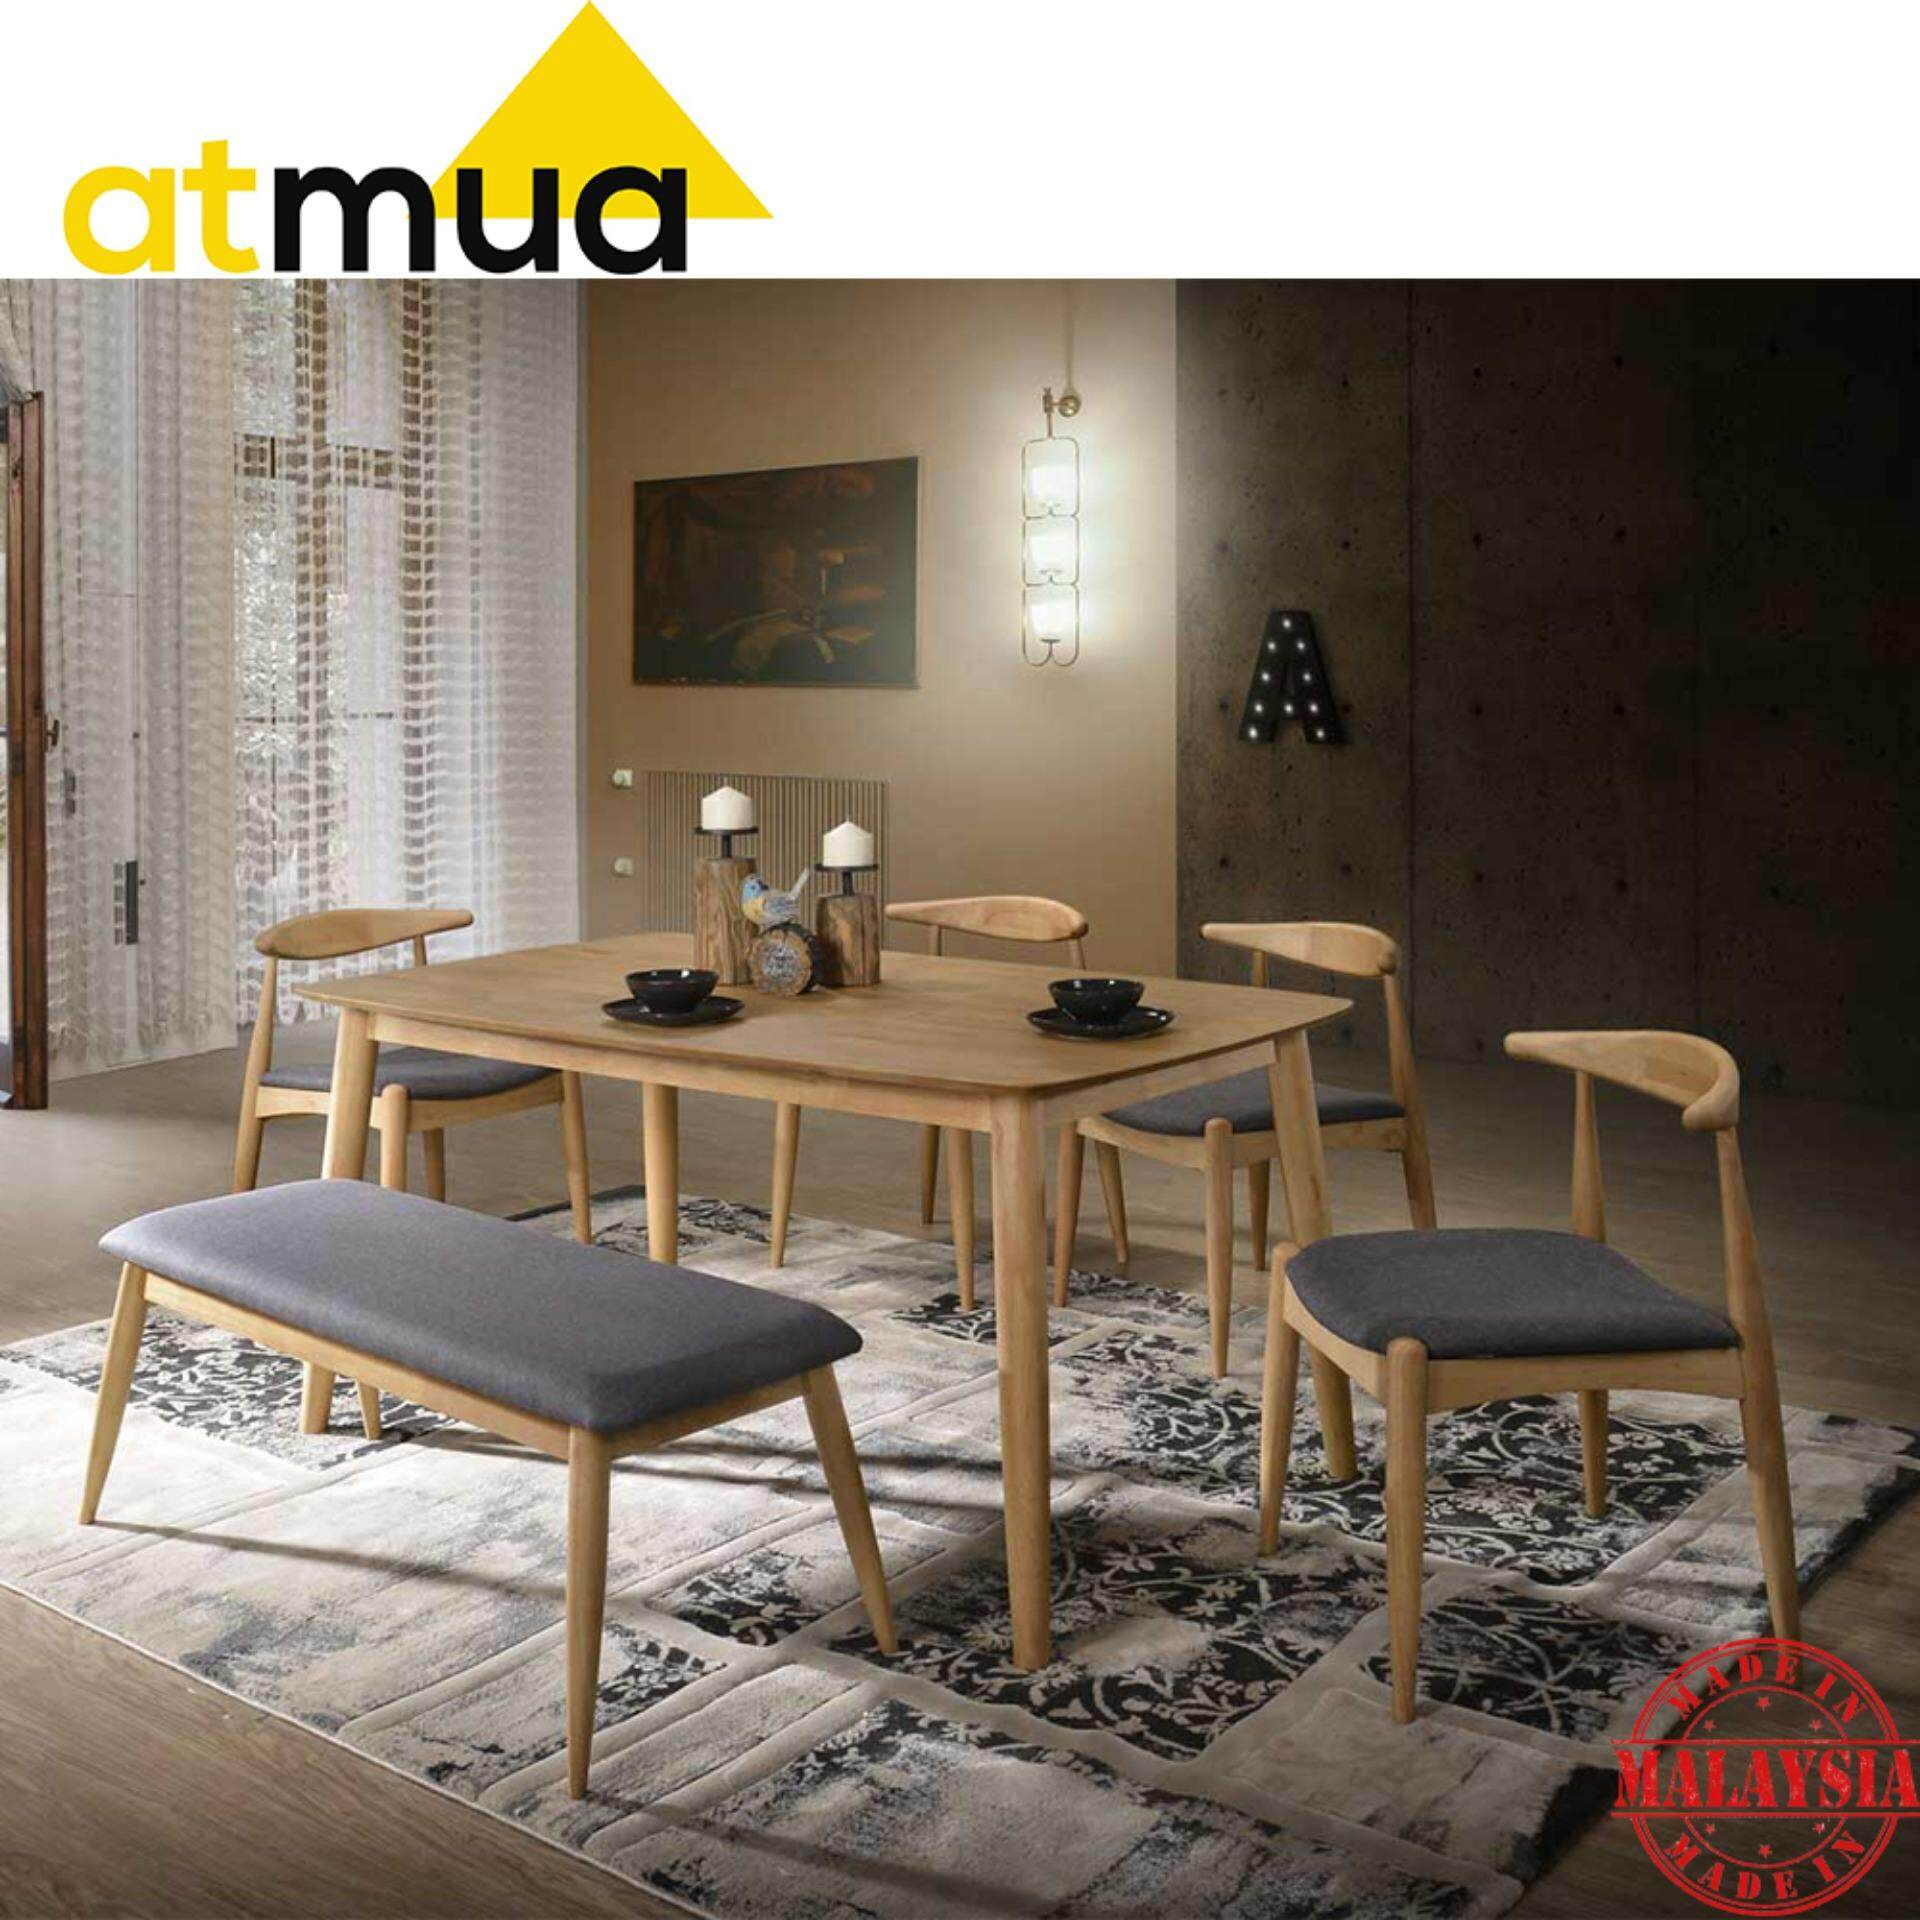 Atmua Olim Dining Set (1 Table + 4 Chair + Bench Chair) - Scandinavian Style [Full Solid Wood]